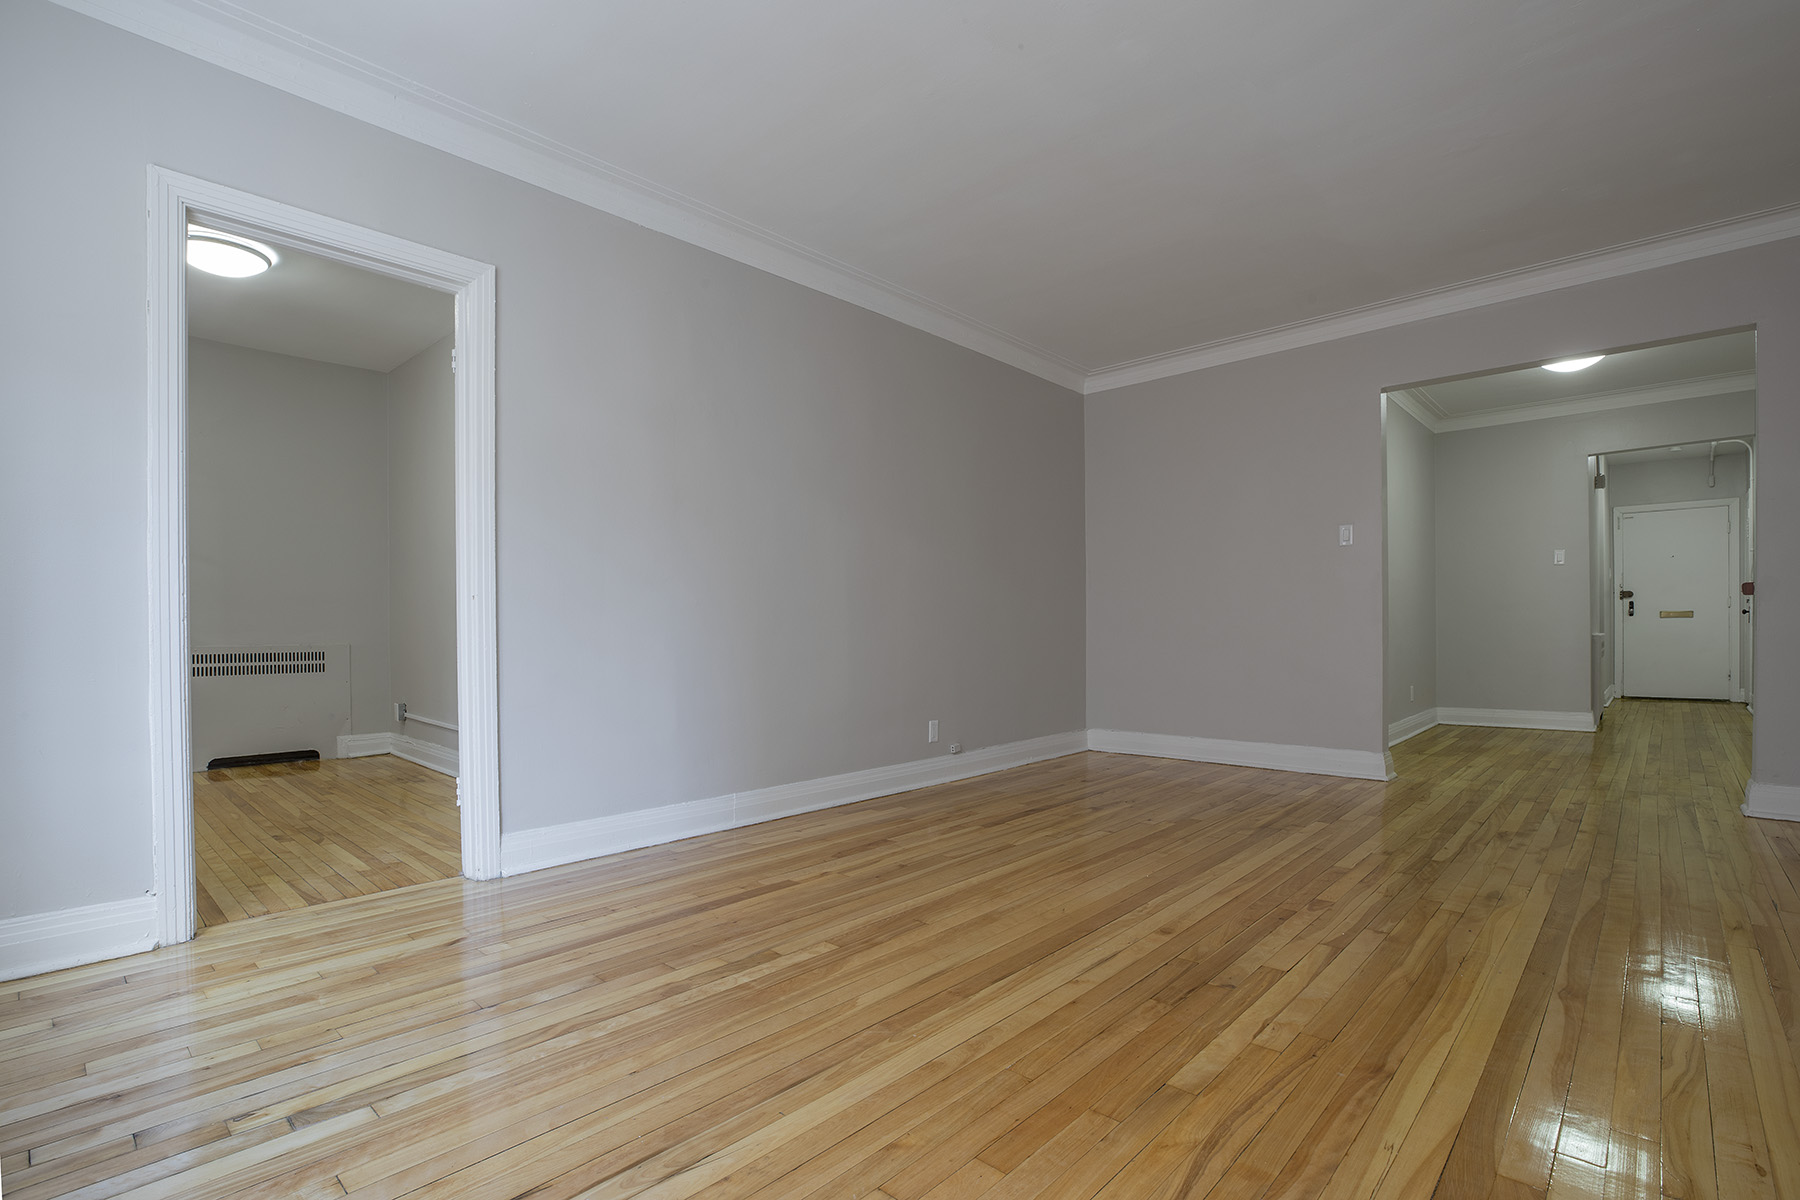 2 bedroom Apartments for rent in Cote-des-Neiges at 5000 Clanranald - Photo 11 - RentQuebecApartments – L401548